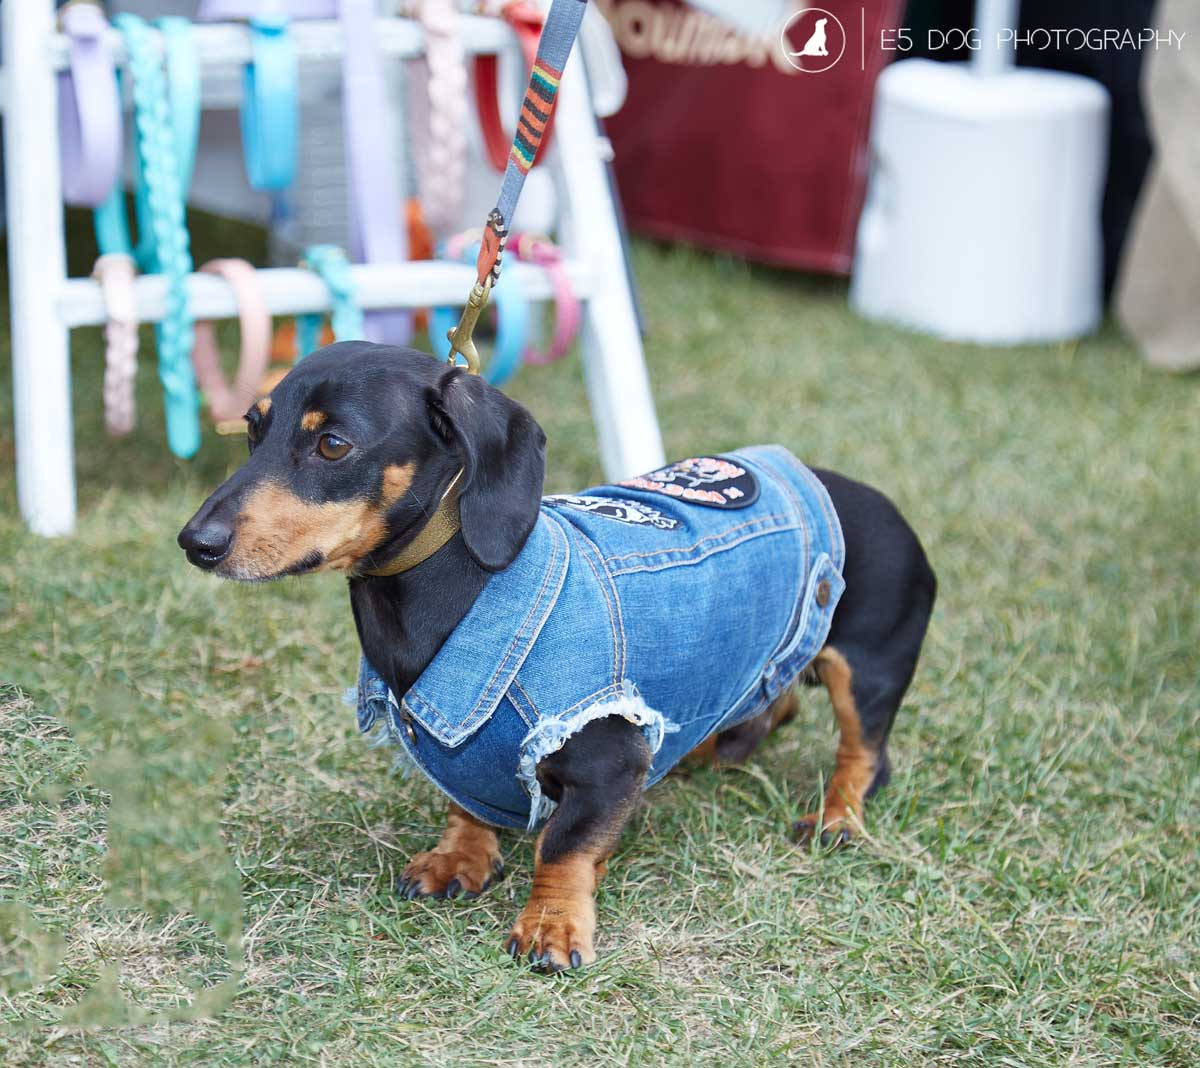 E5_Dog_Photography_PupAid_Primrose_Hill_2016_021